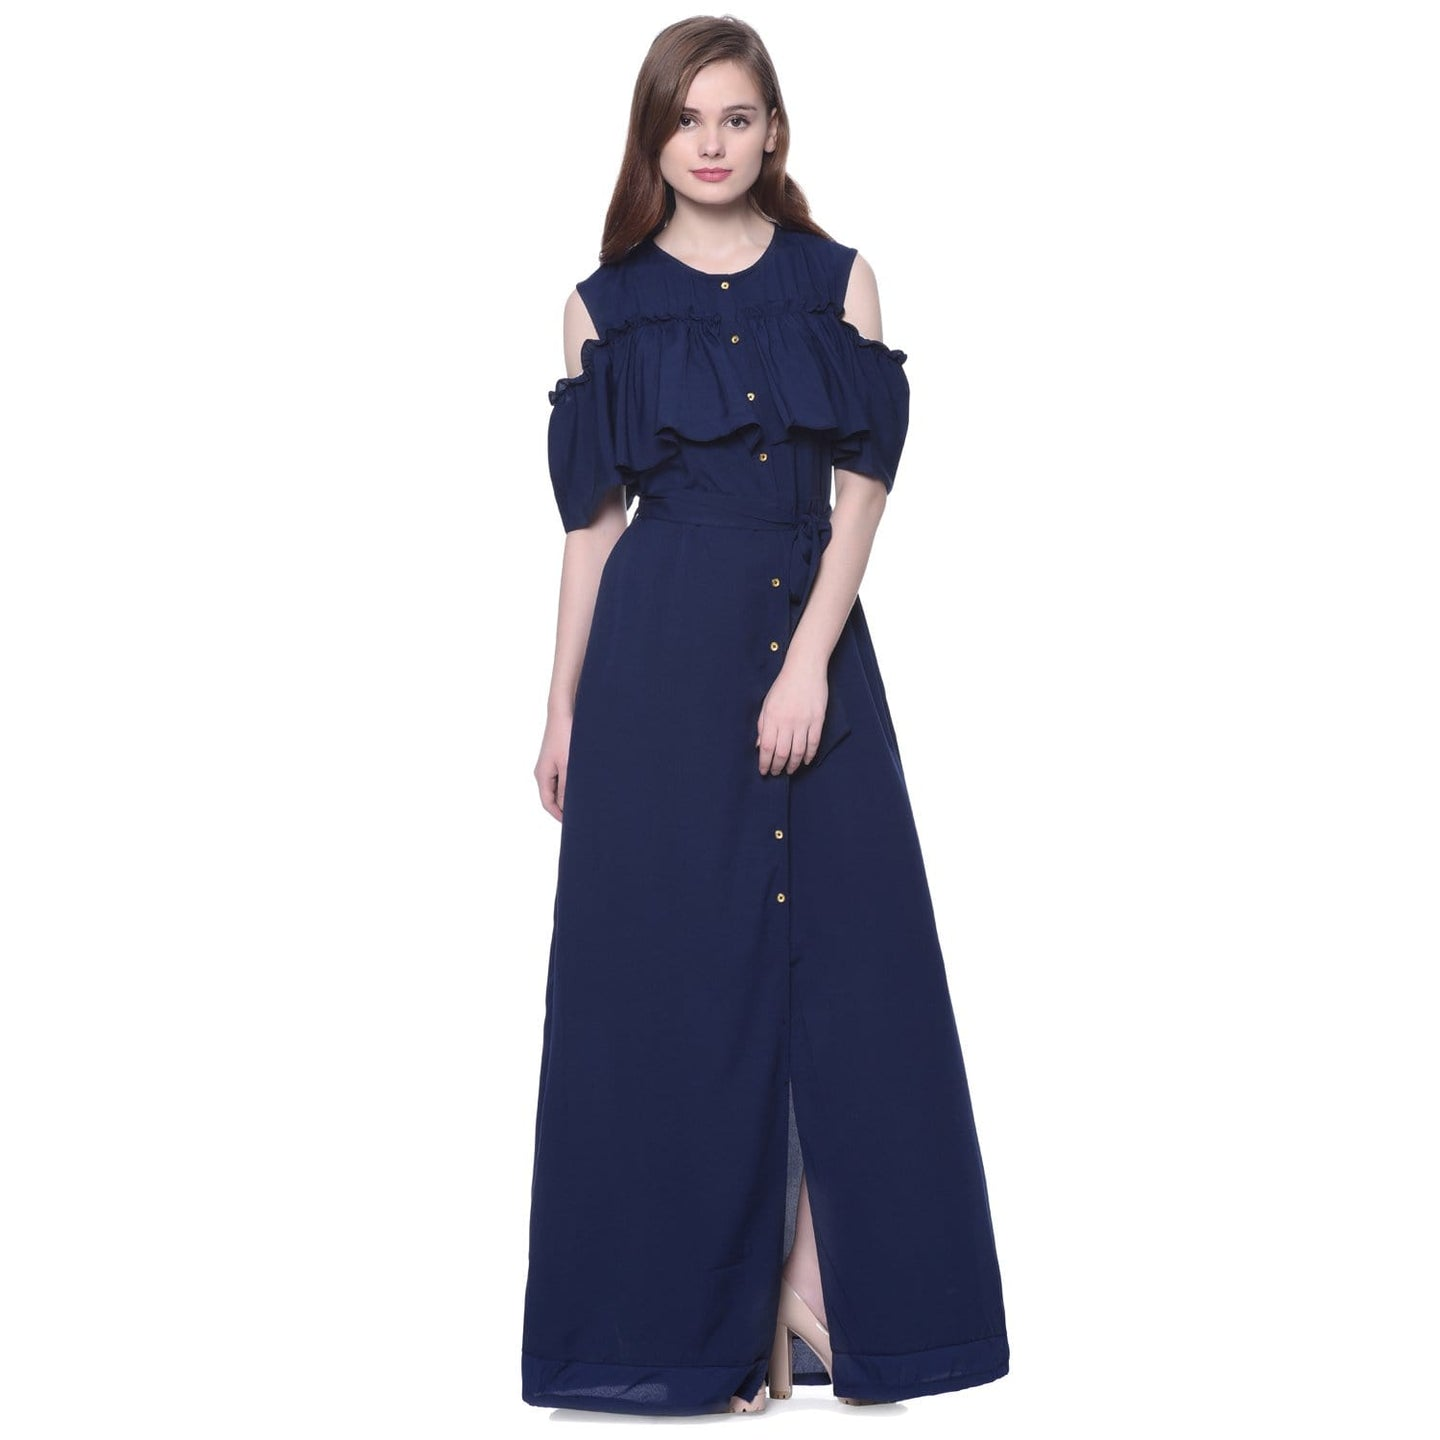 460c3a34c6af1 Ruffled Buttoned Cold Shoulder Navy Blue Maxi Maternity Dress – Uptownie